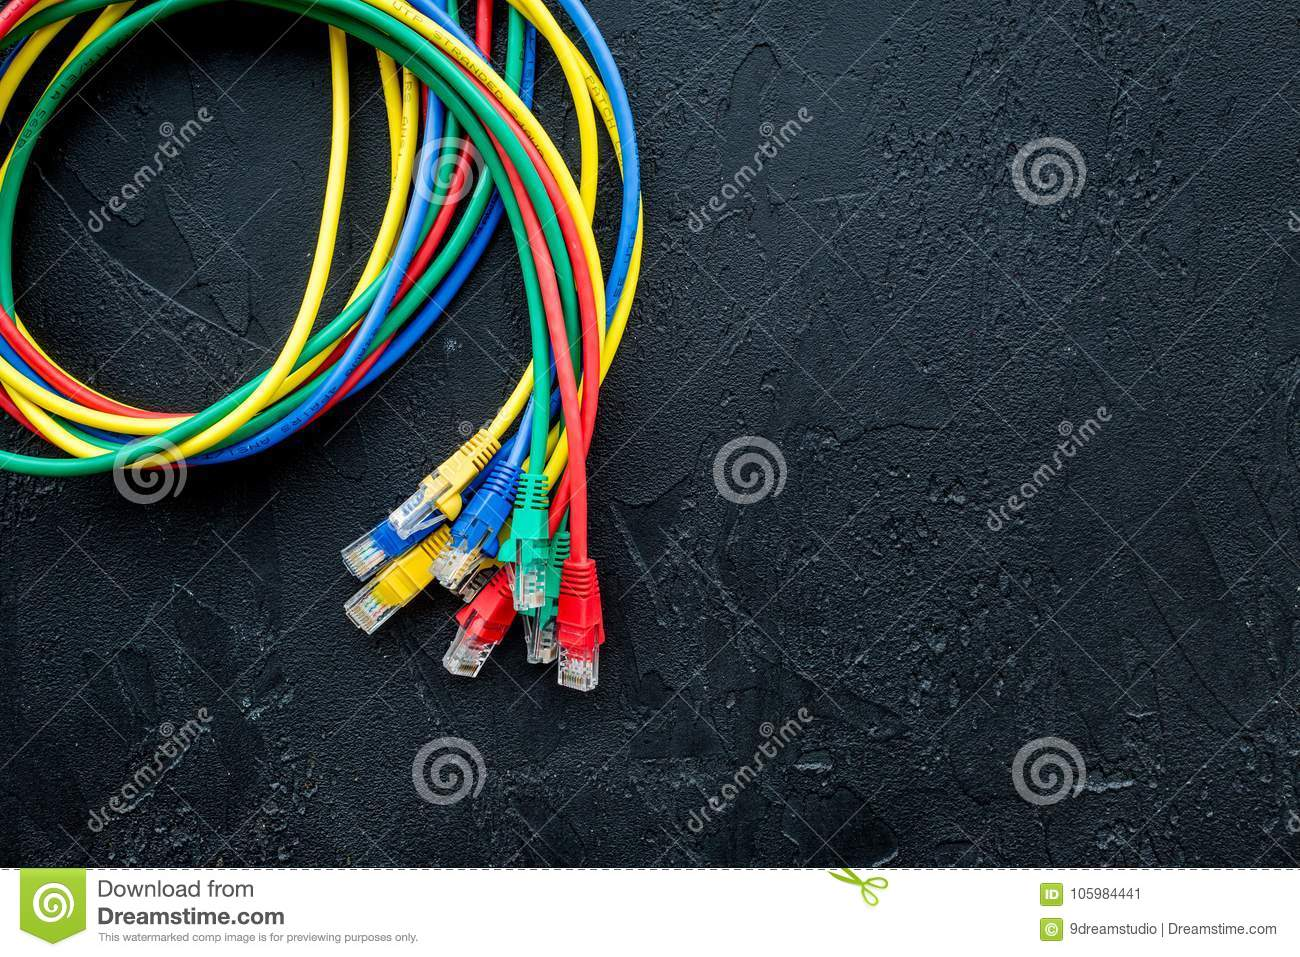 Network Wires Assorted Colors With Tips On Black Background Top View For Wiring Electric Copyspace